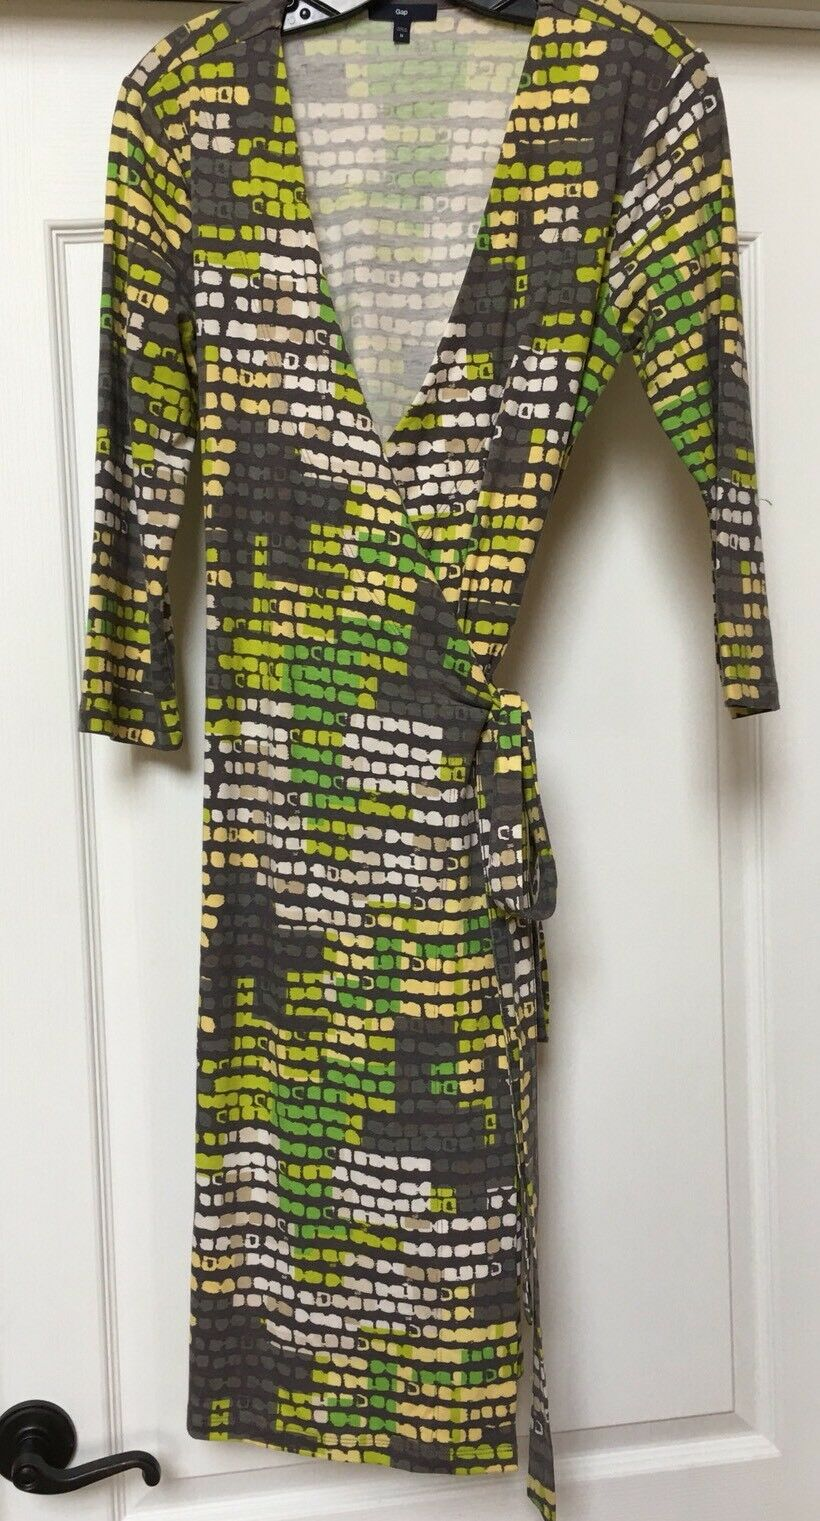 Gap knit wrap dress 3 4 sleeved stretch multi-color , Size M.   NWOT